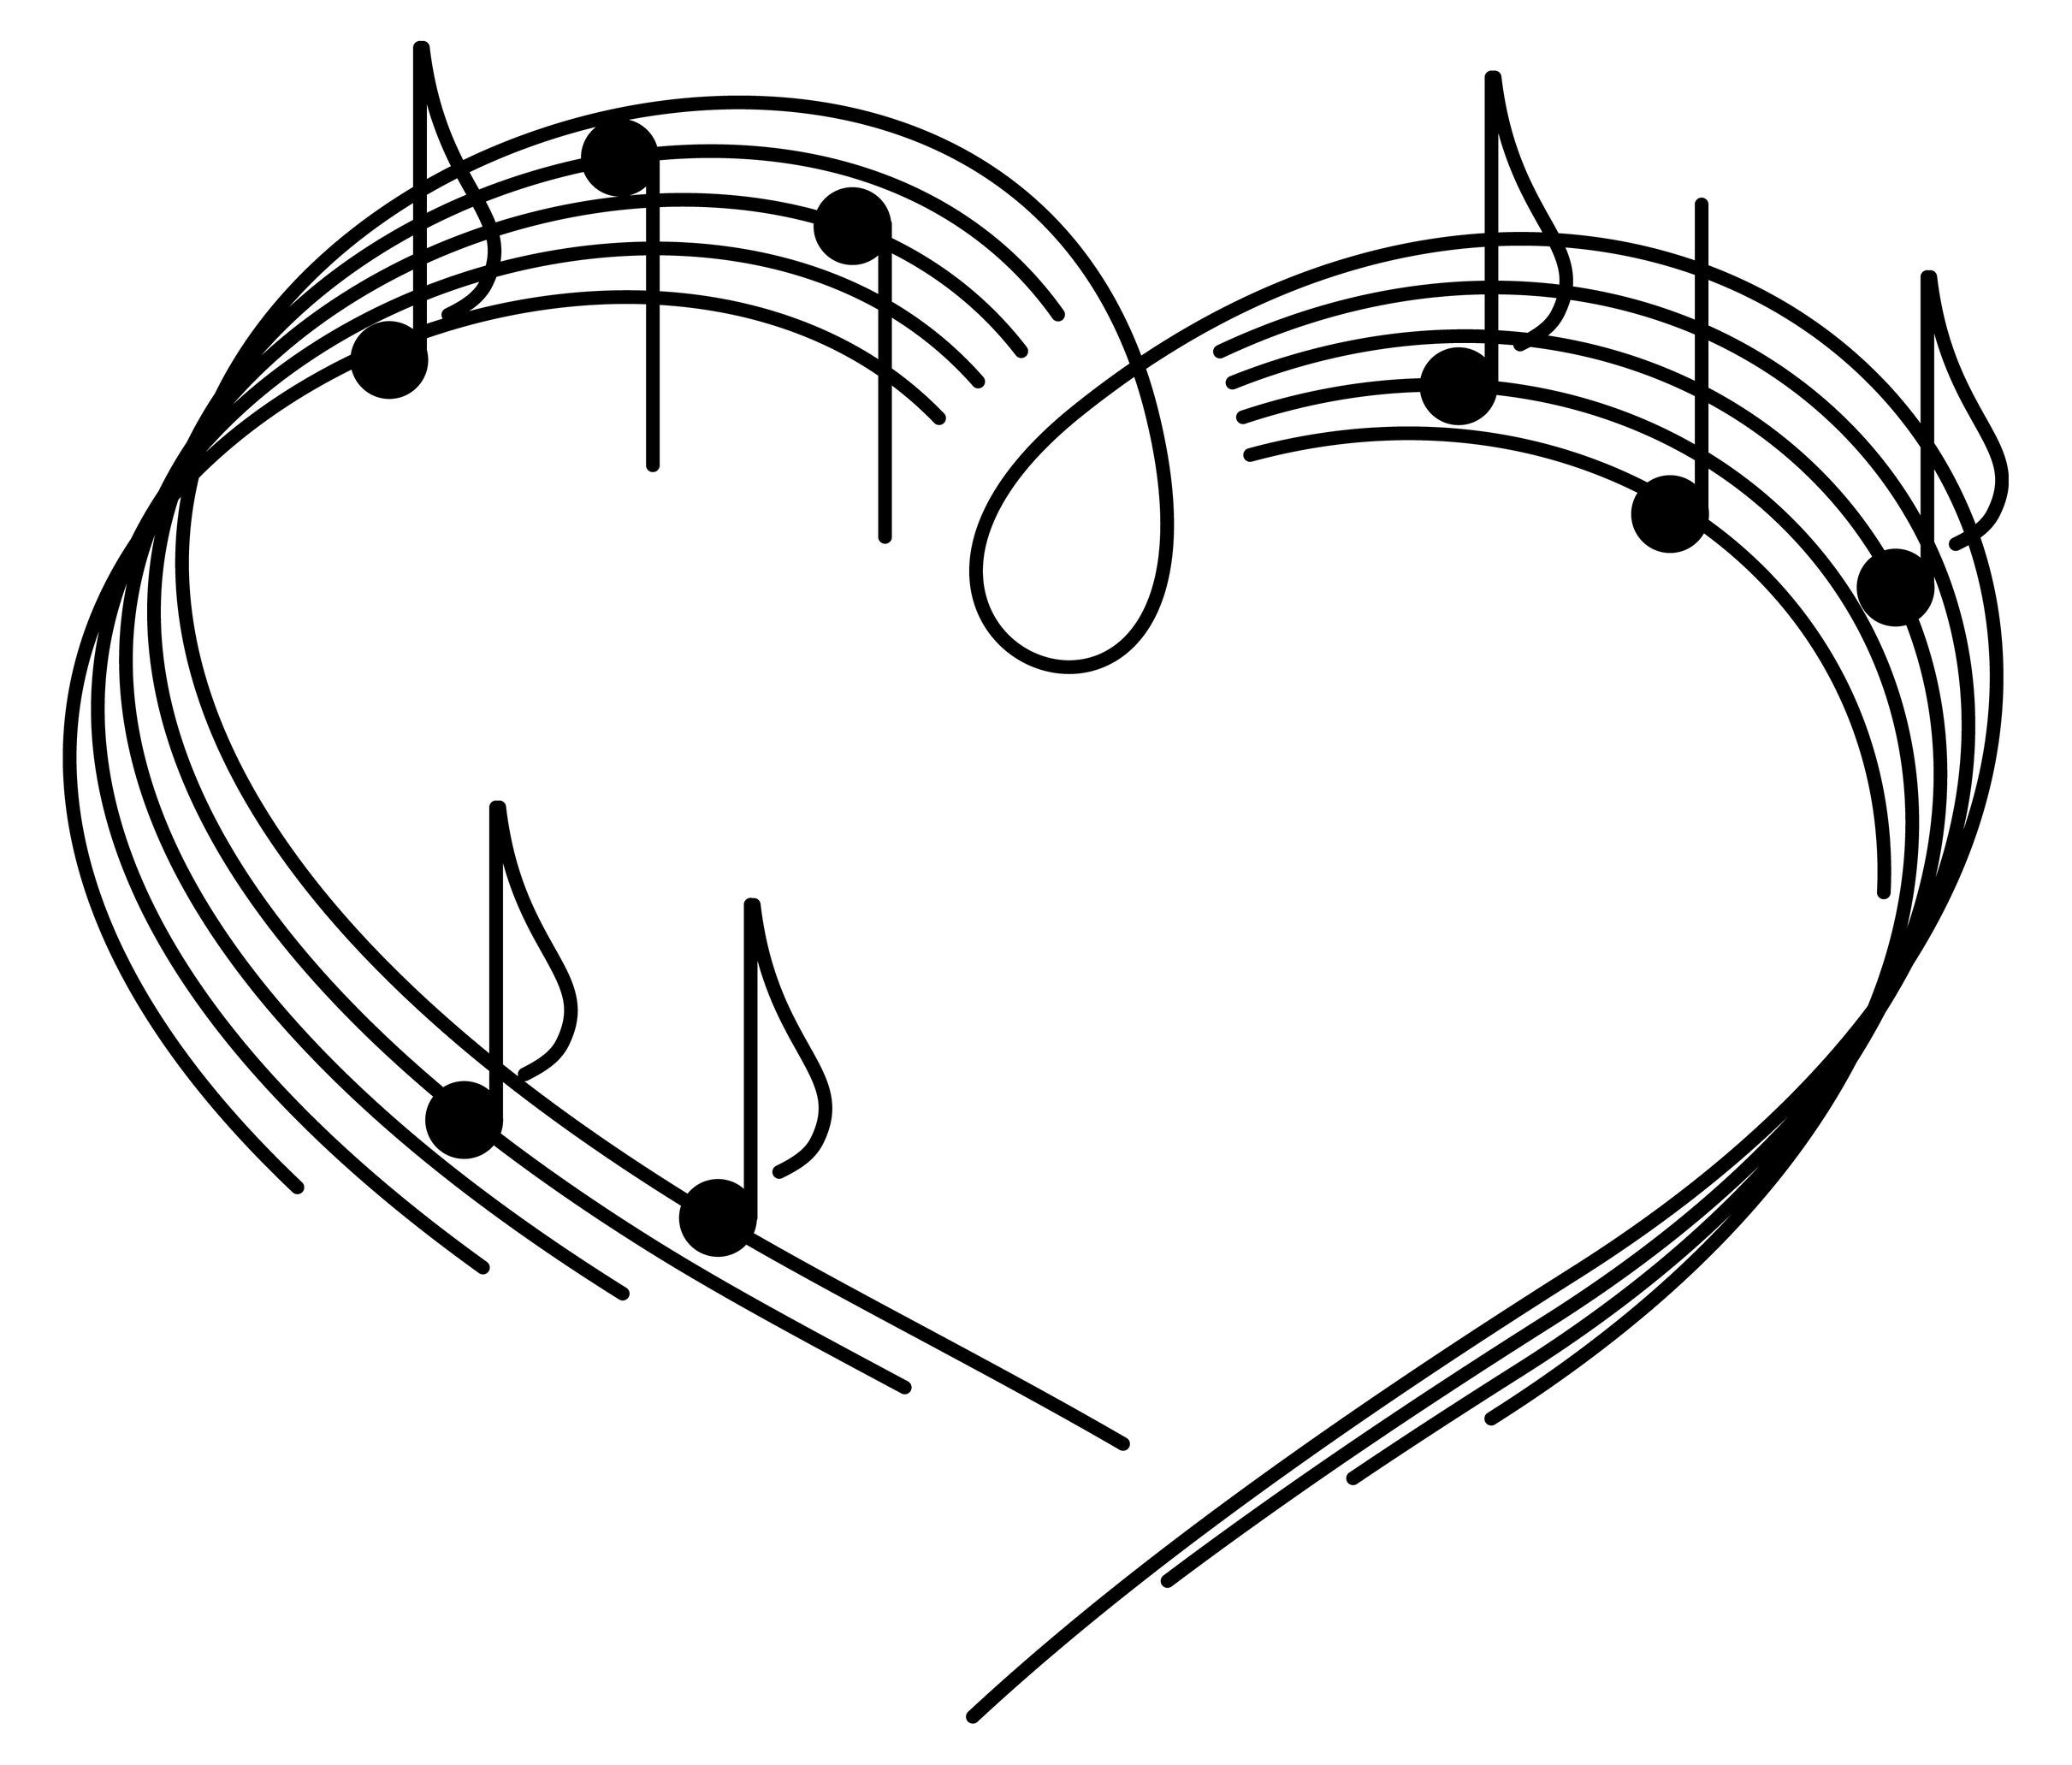 Amd clipart love Music notes and heart notes